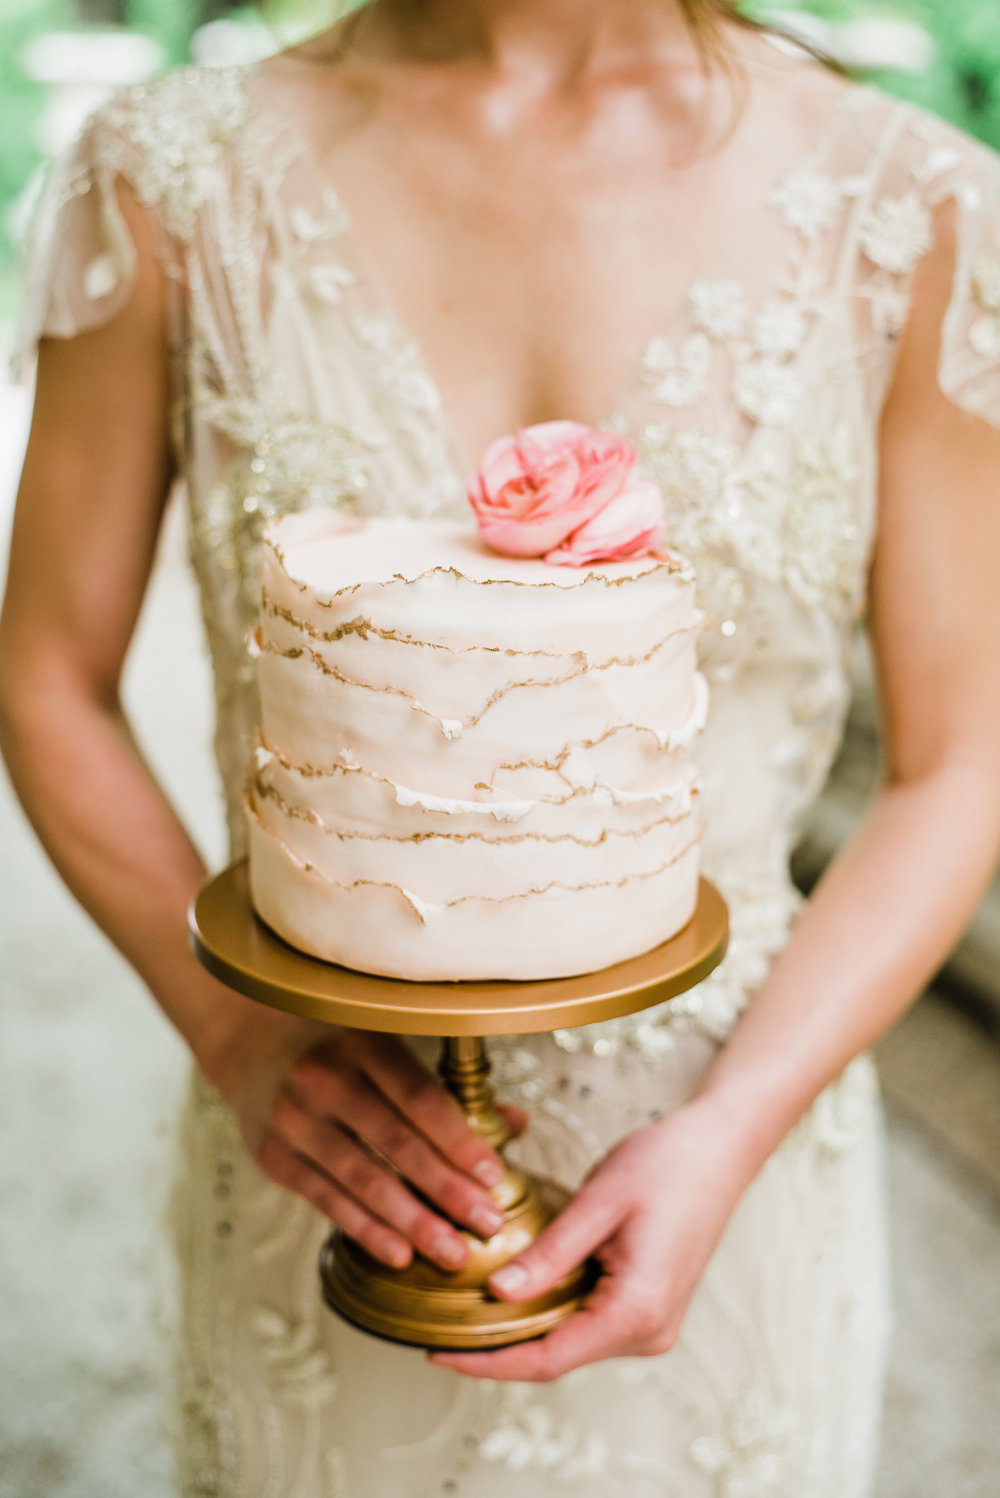 photography:   Megan Harris Photography    Our  Simply Cake Stand in Antique Gold  is perfect for this blush and gold deckled edge wedding cake by  The Cake Studio, Baltimore